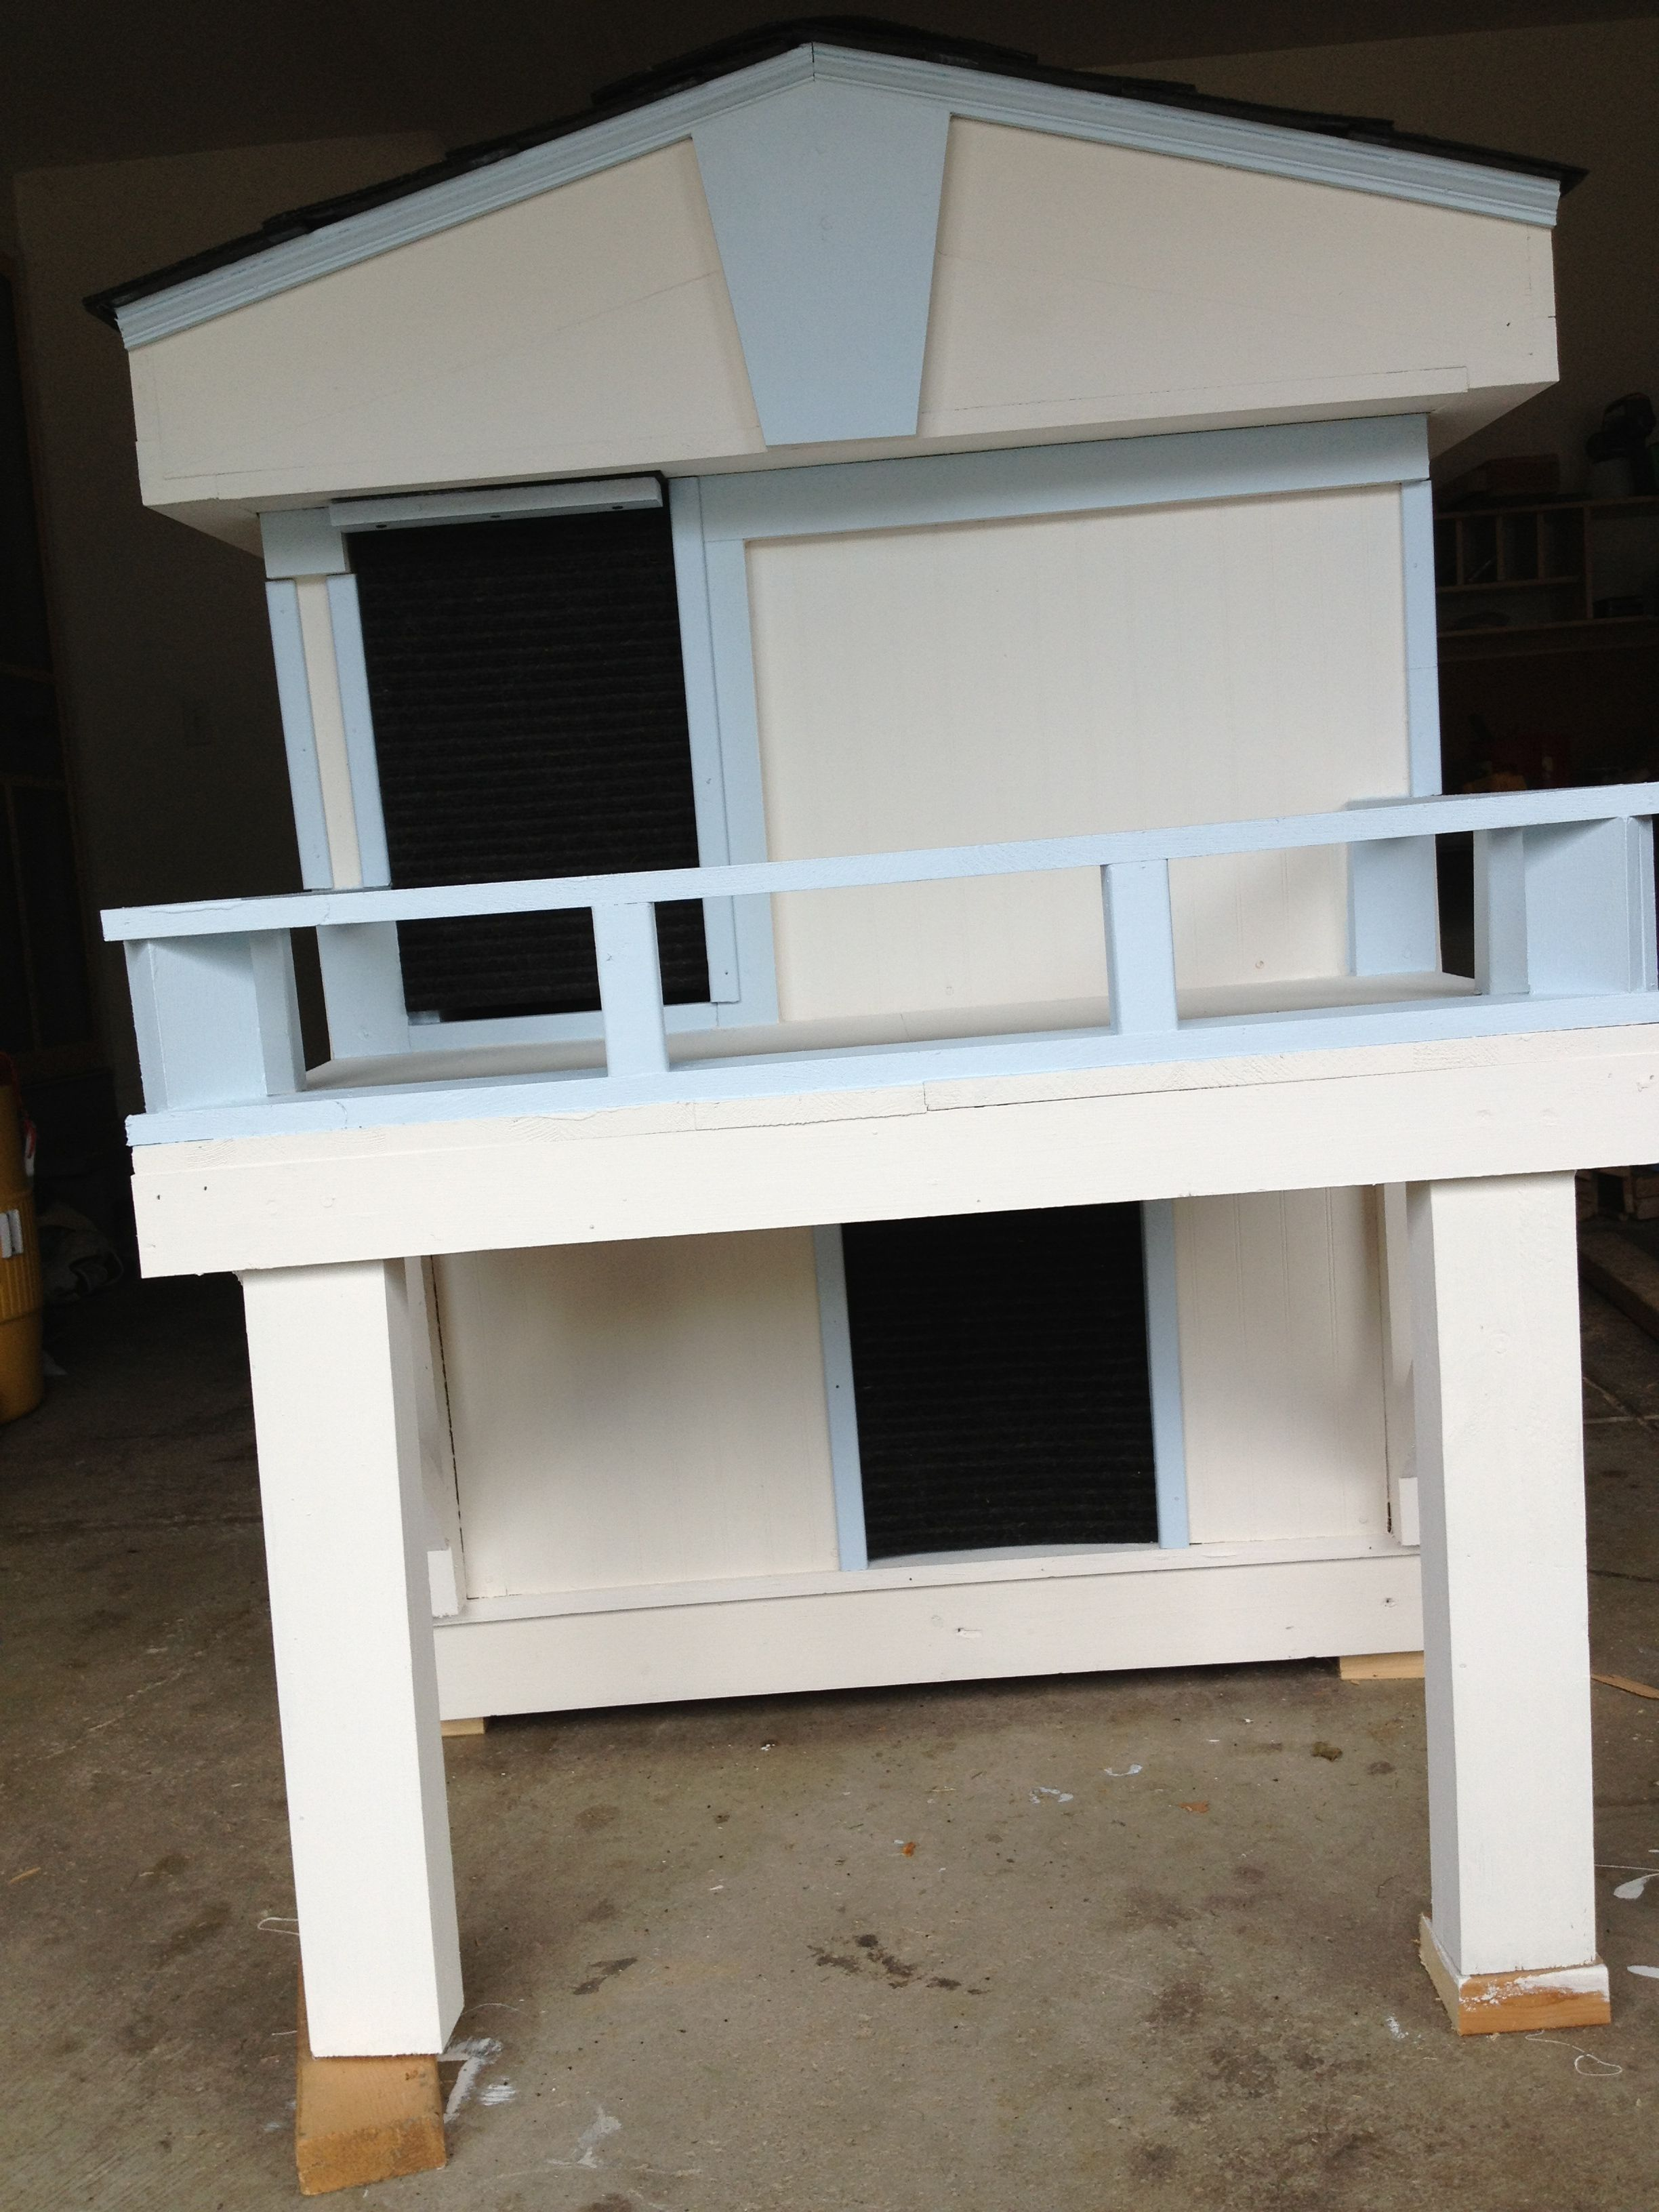 2 story dog house with inside stairs and upstairs balcony for Balcony upstairs